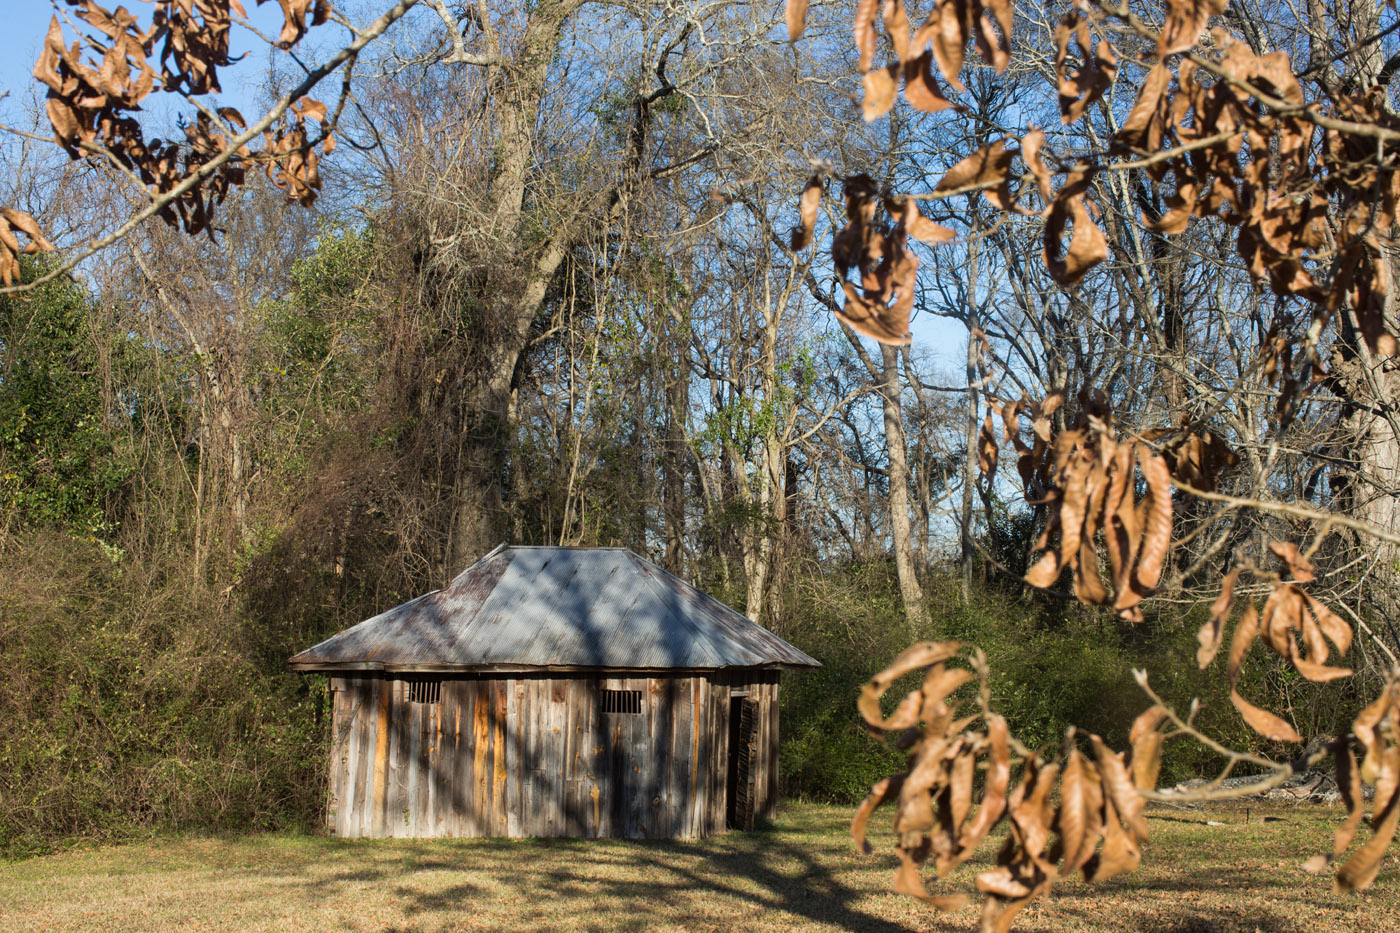 Thomaston, Ala - 02-12-16 - This is the site where Rufus Lesseur, was first detained and later lynched on August 16, 1904. He was accused of raping a white woman on Aug. 14 of that year. This is a soil collecting for the lynch site project, for The Equal Justice Initiative. - Credit Photo by Ozier Muhammad